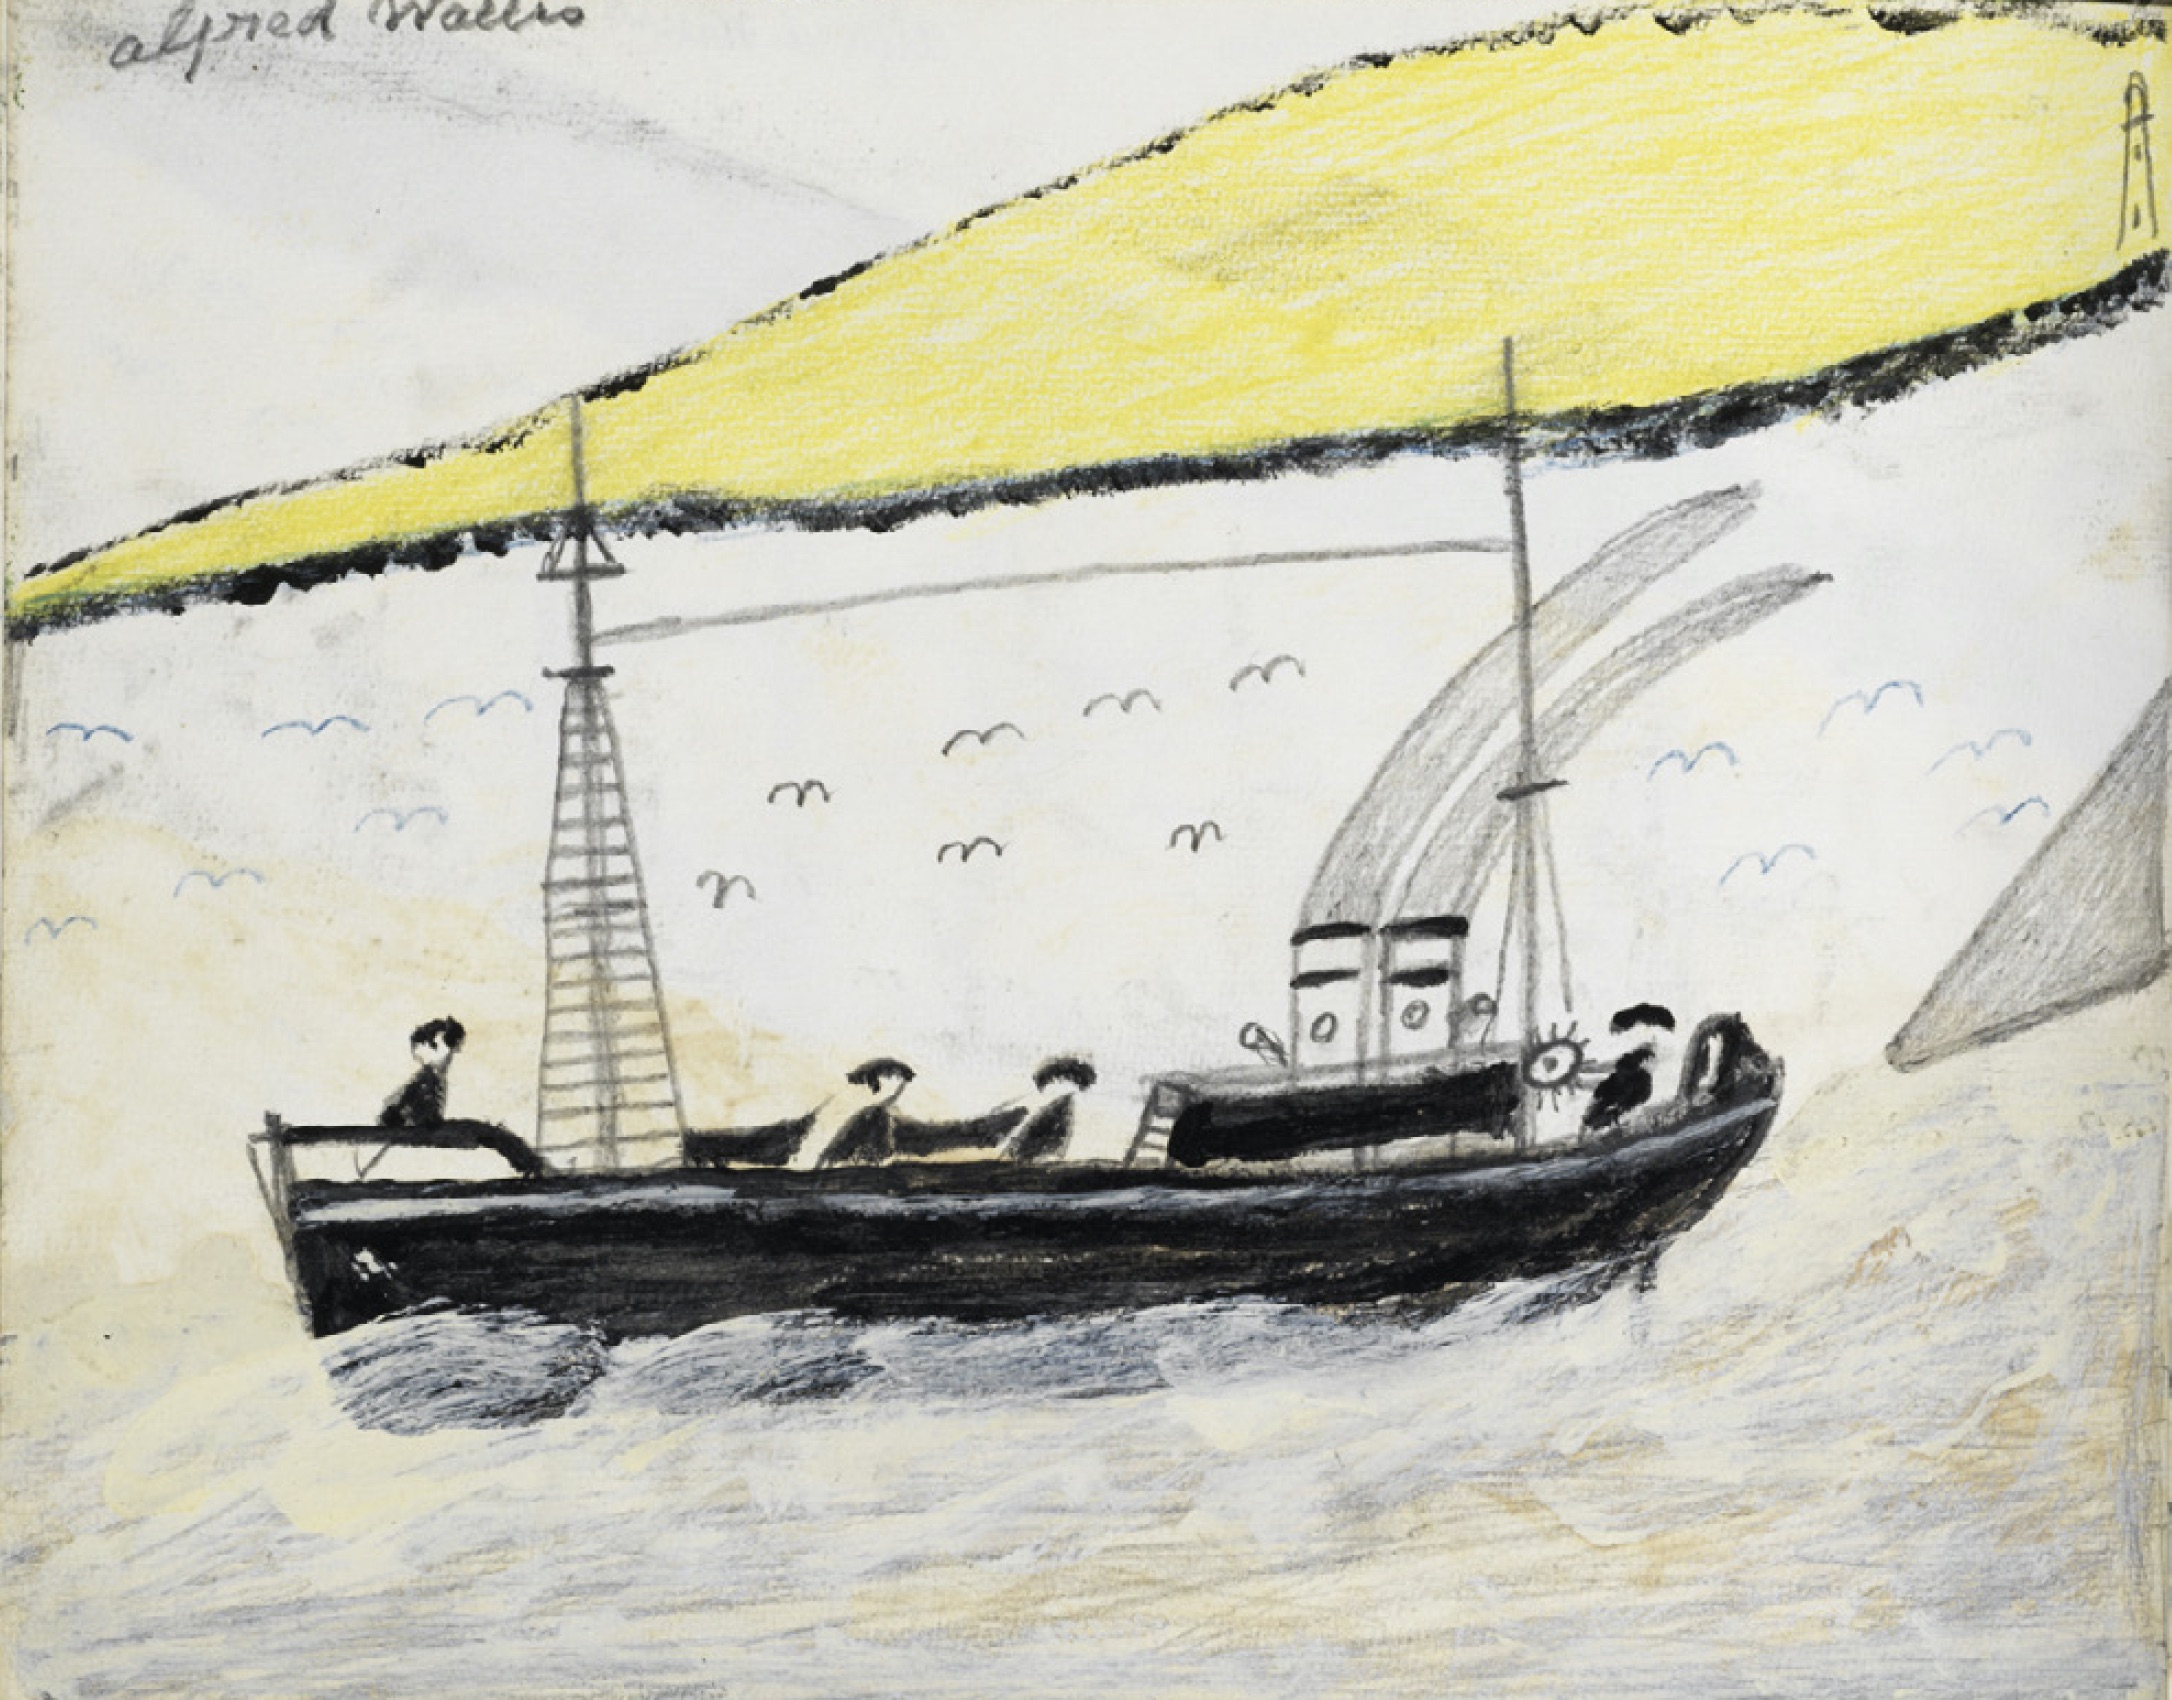 A painting of a boat in Alfred Wallis sketchbooks